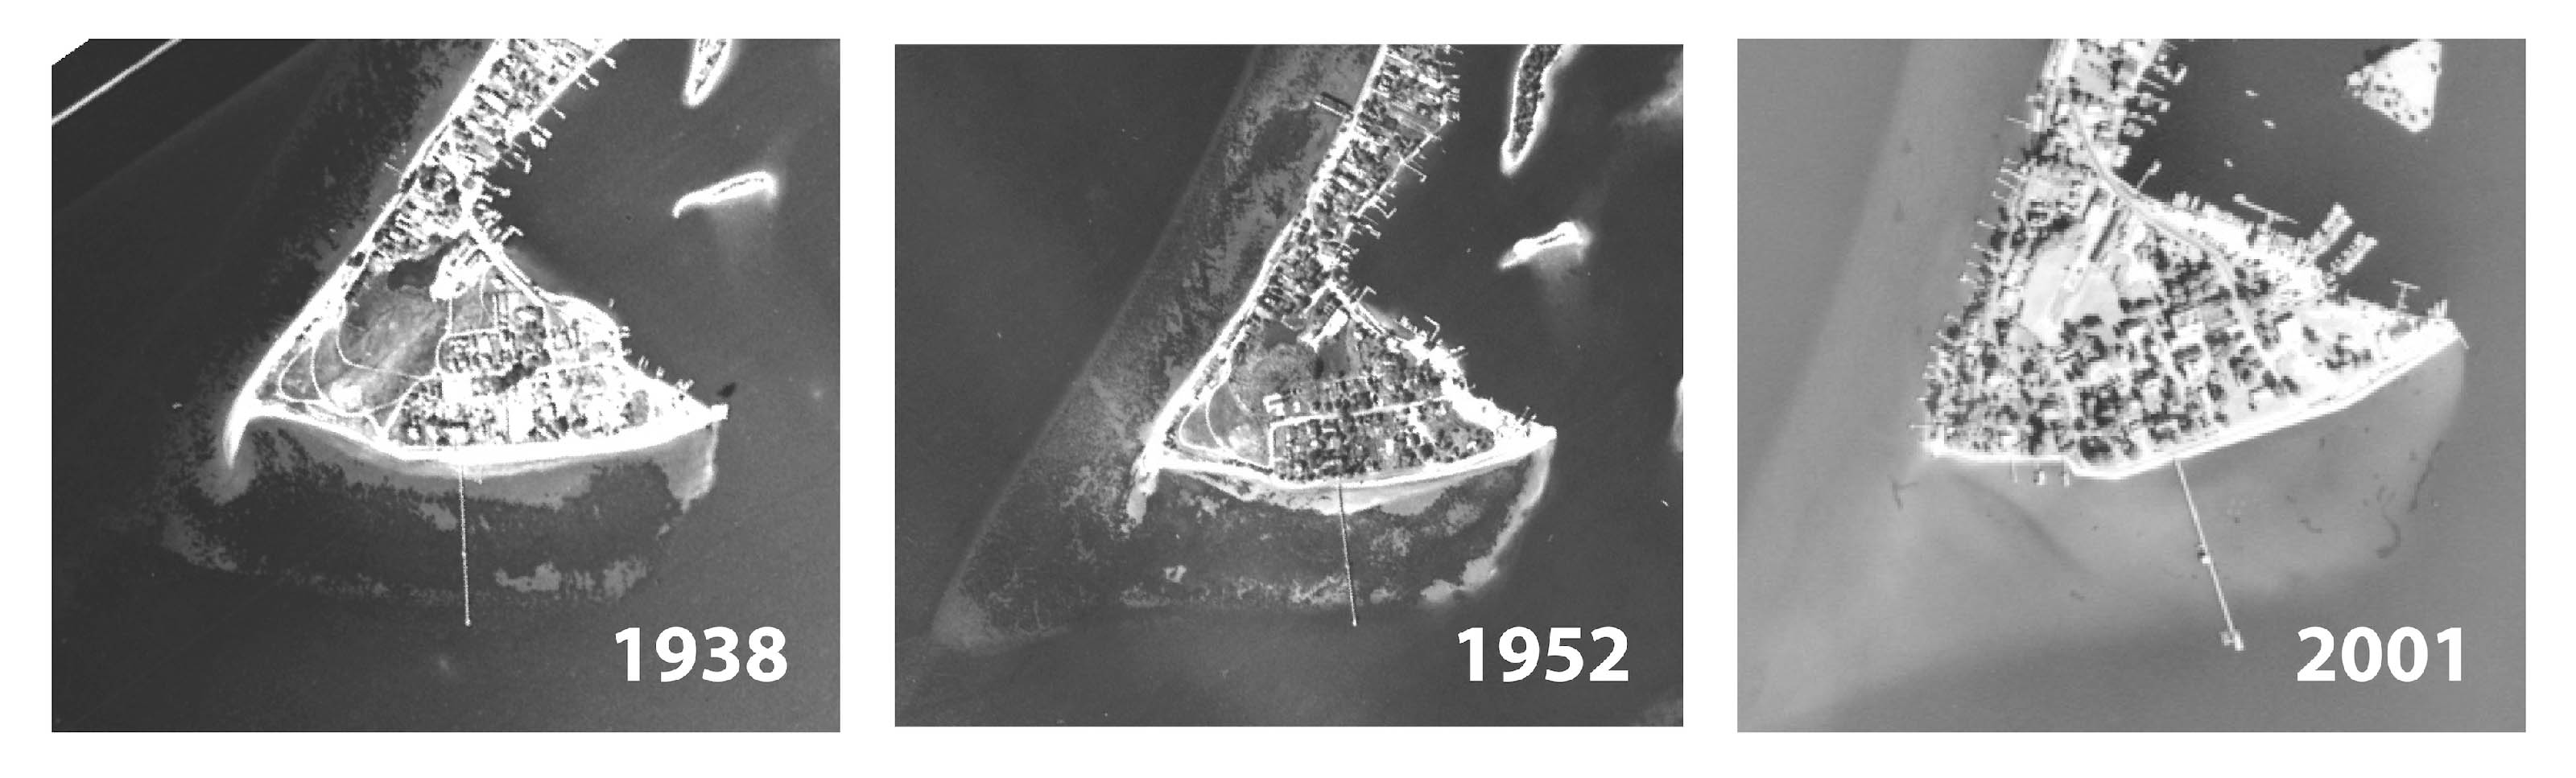 Time series photo collage showing disappearance of SAV off Solomons, Maryland.